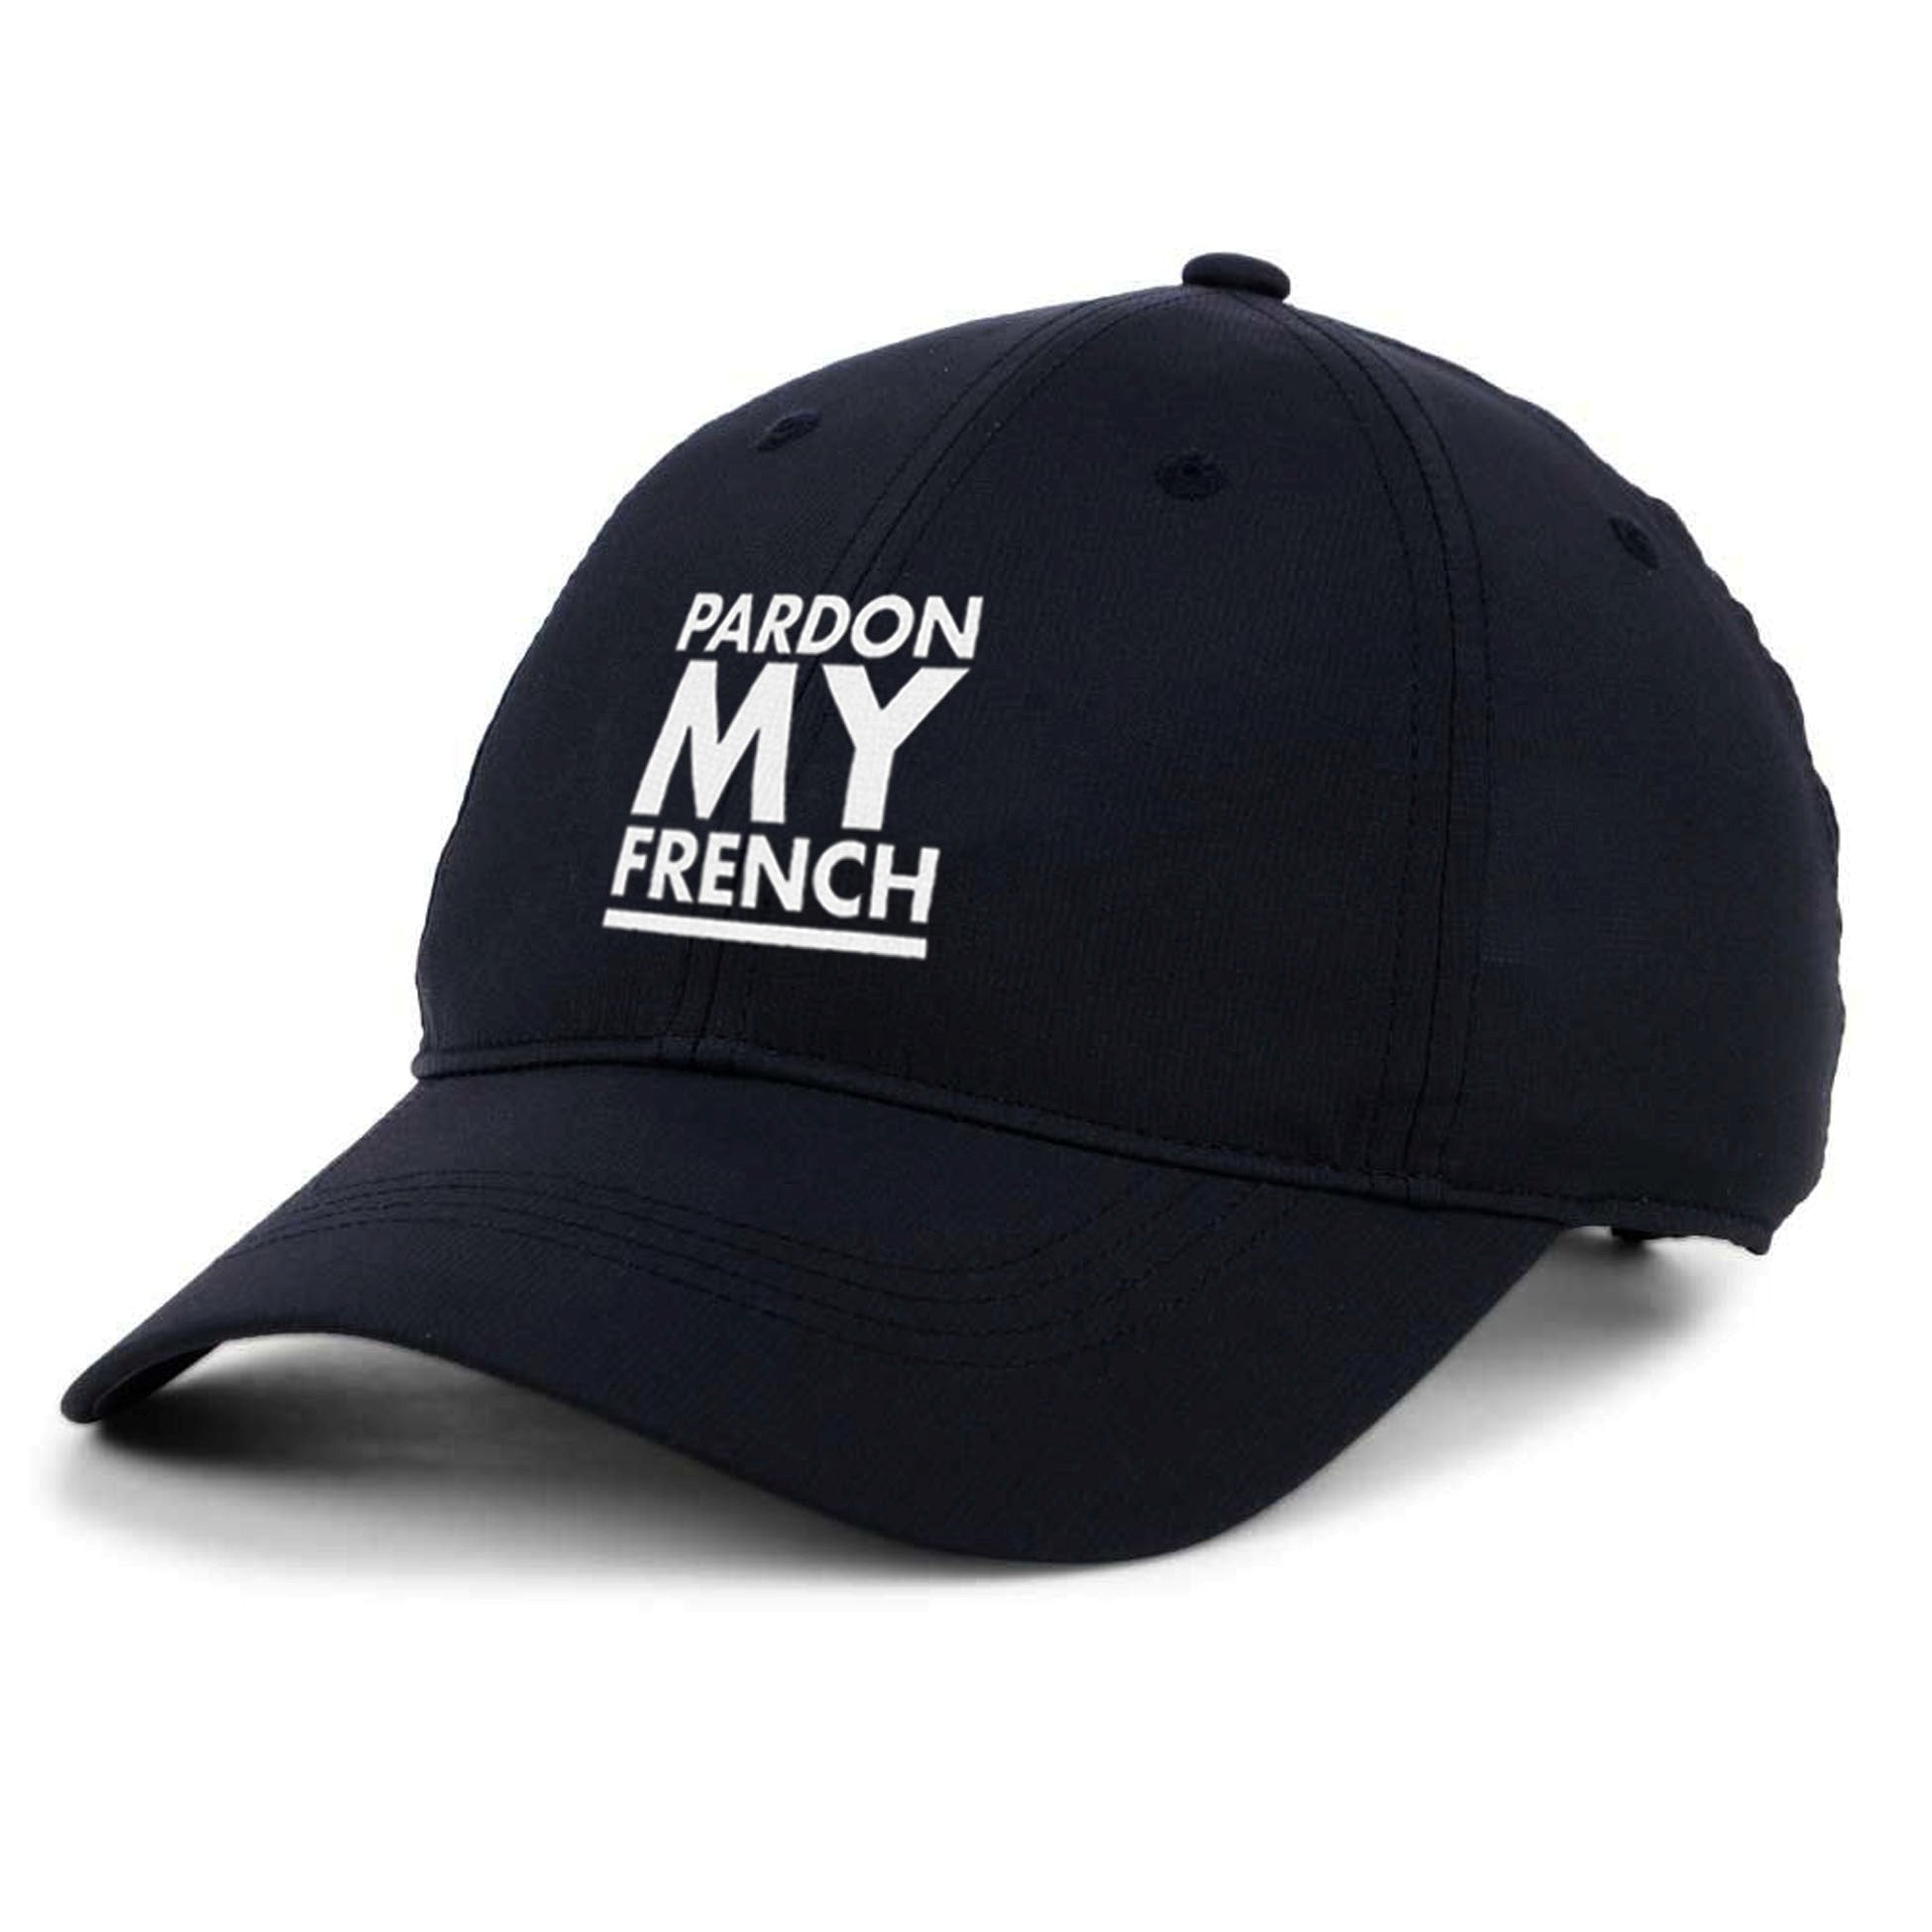 PARDON MY FRENCH BASEBALL CAP